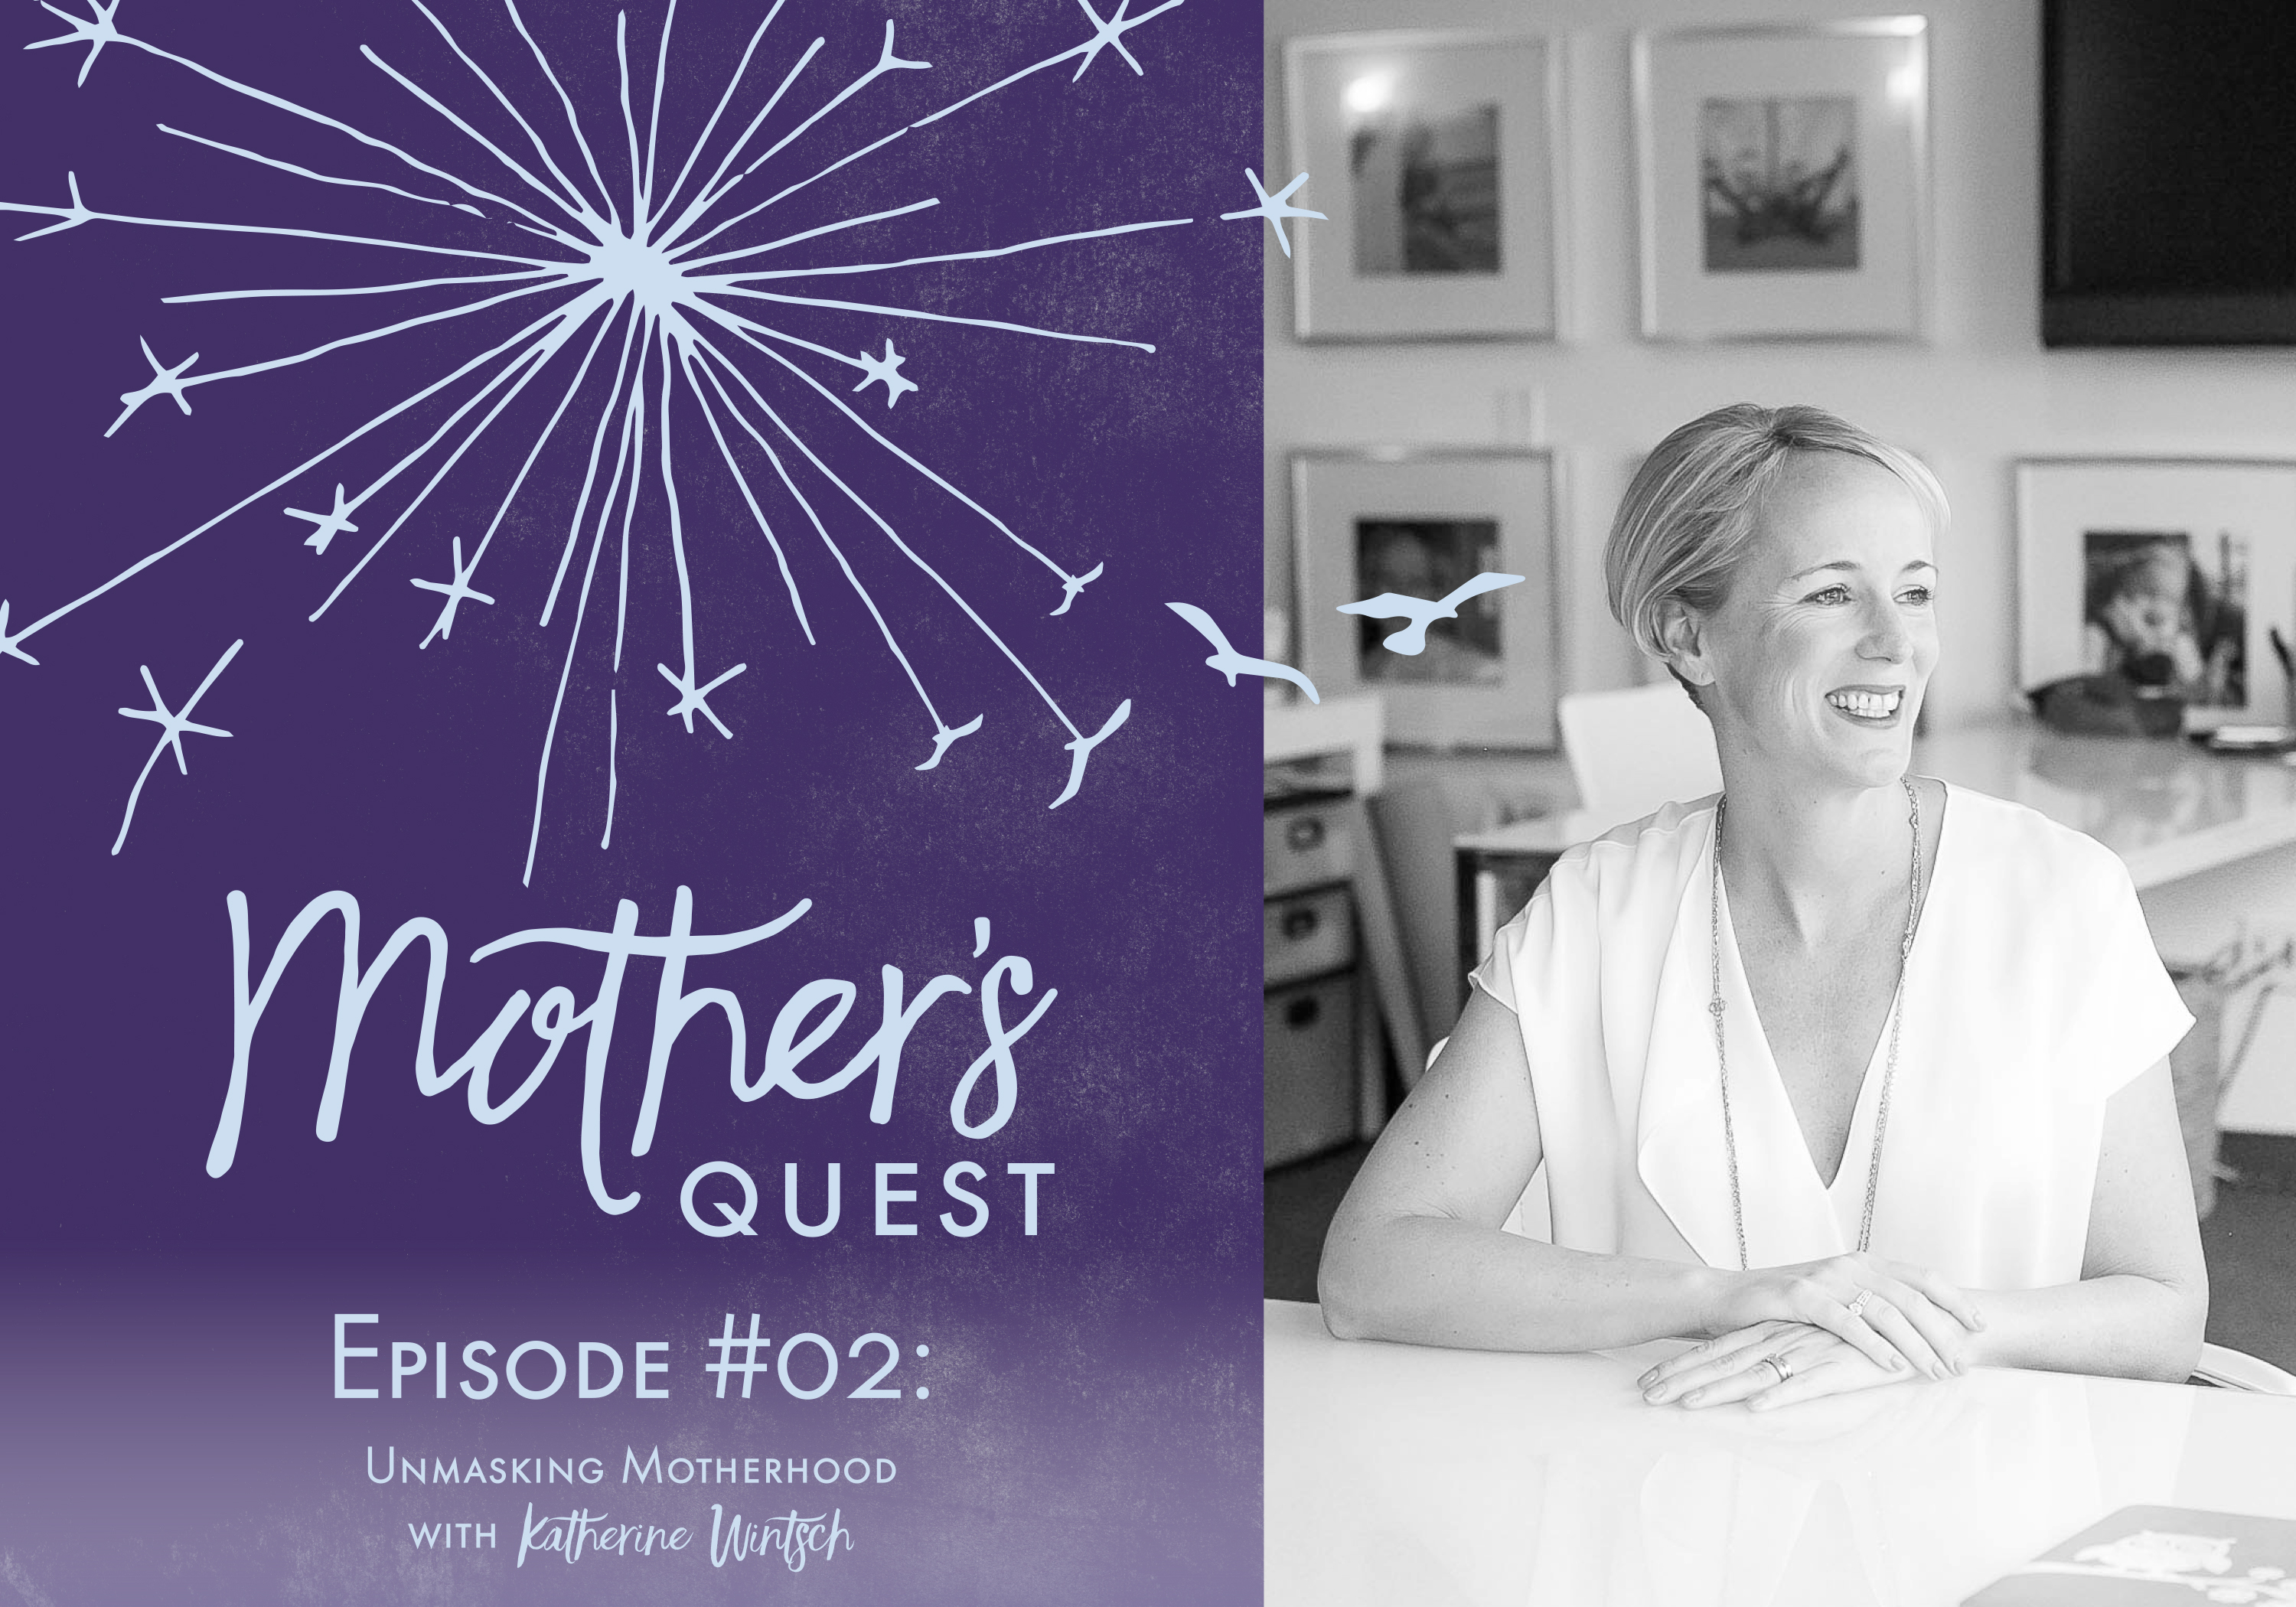 Ep 02: Unmasking Motherhood with Katherine Wintsch